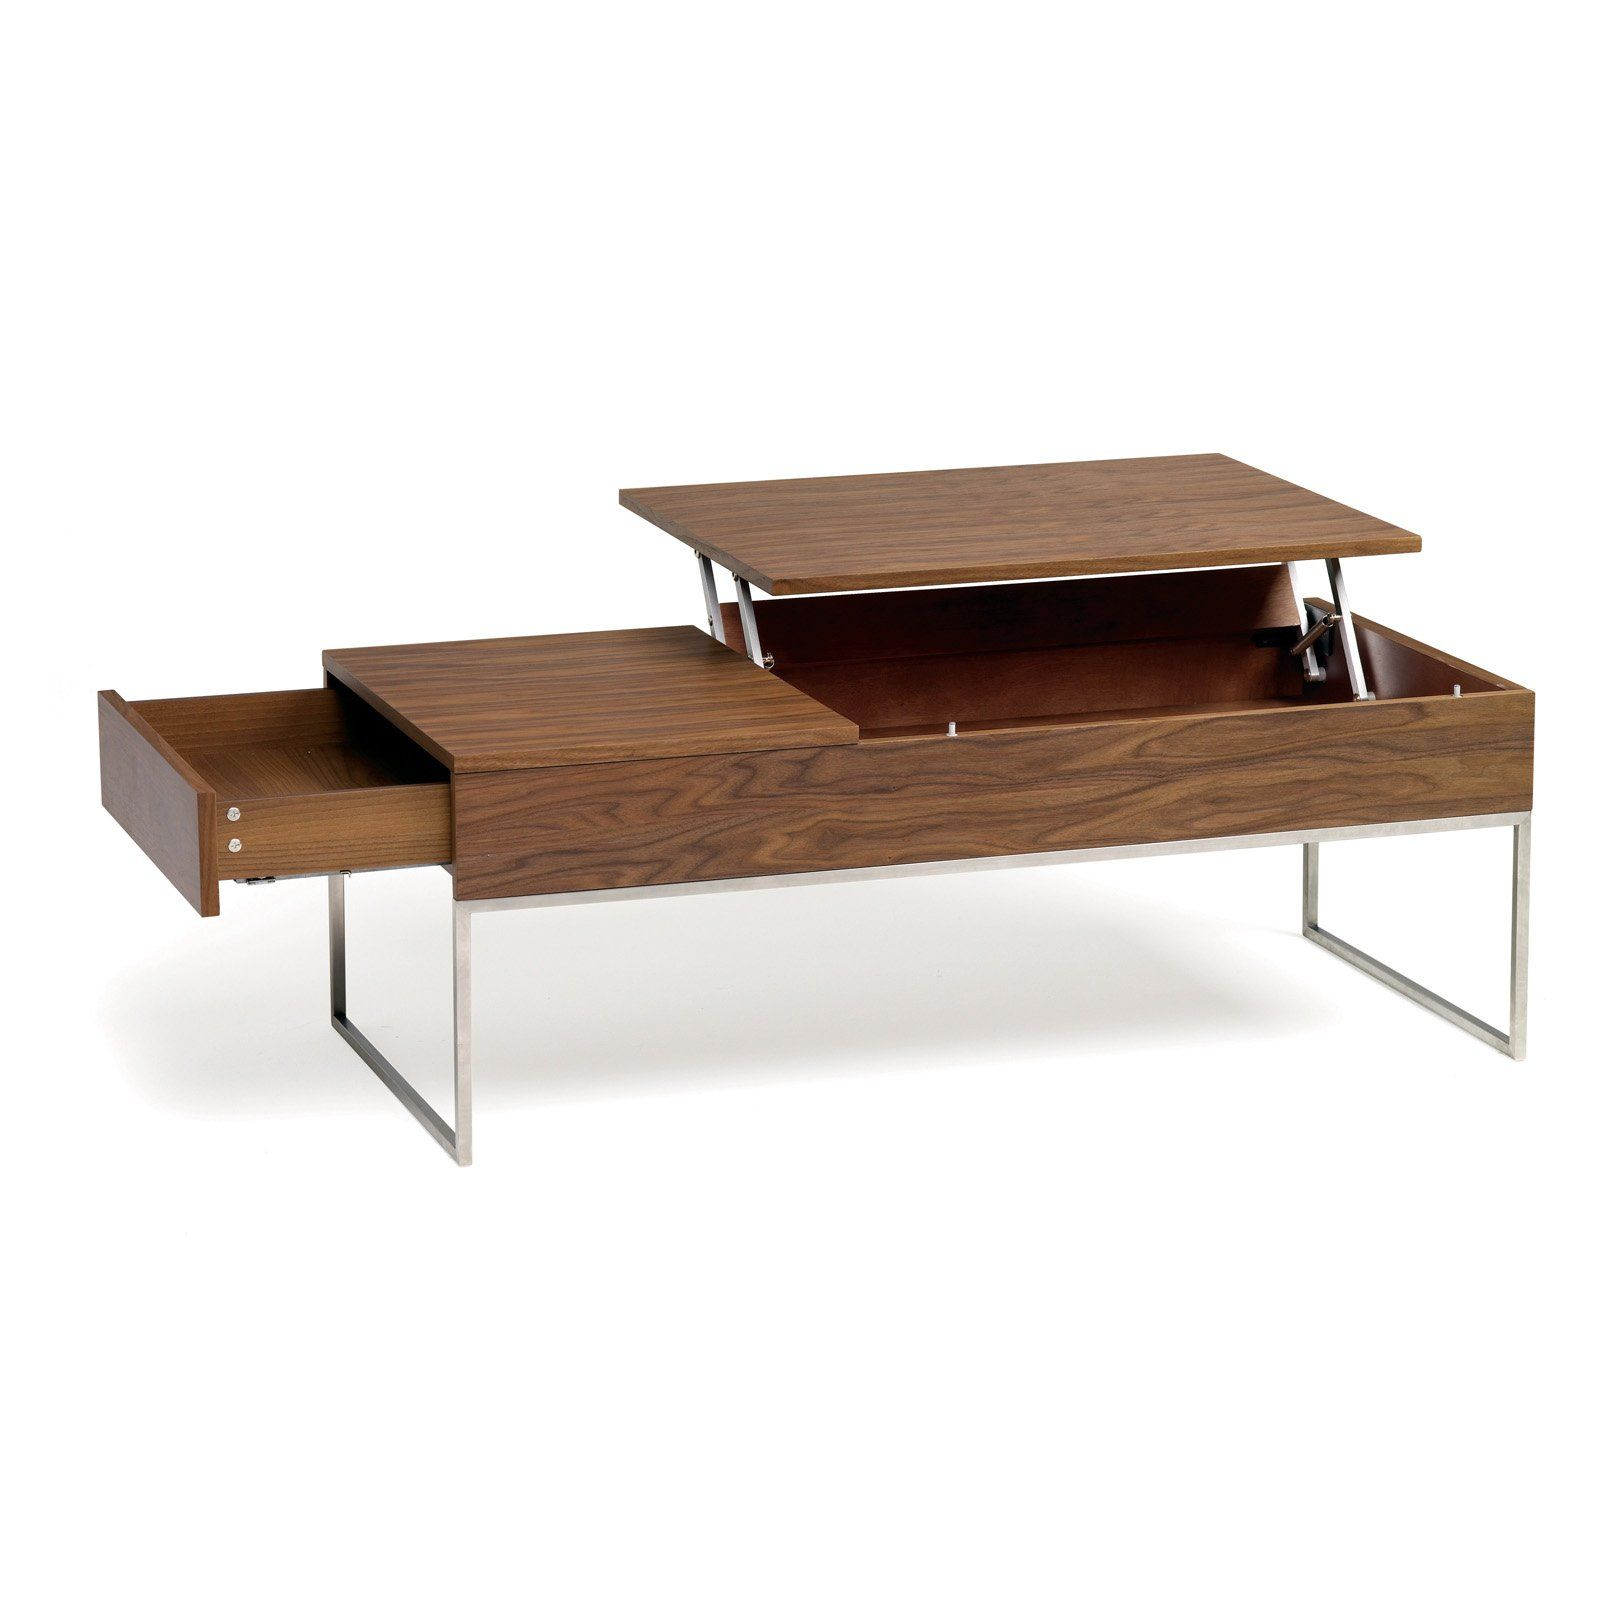 Have To Have It Nuevo Marlow Lift Top Coffee Table 1020 60 Coffee Table Walnut Coffee Table Ikea Lack Coffee Table